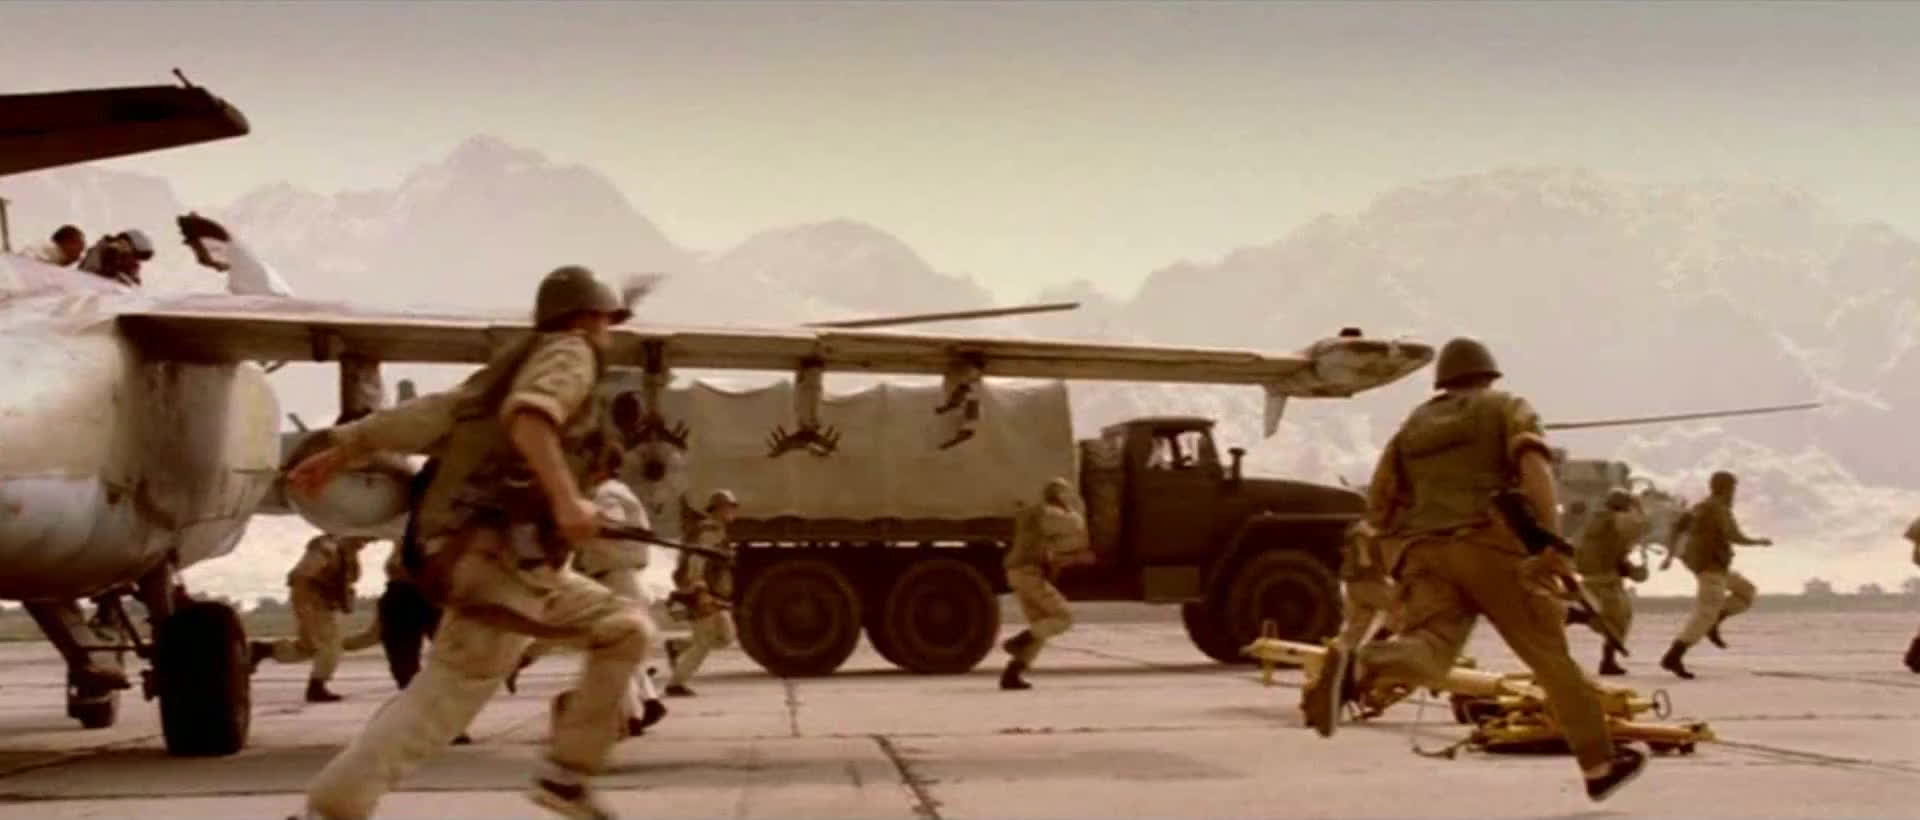 militarygfys, soviet union (country), soviet war in afghanistan (military conflict), 9th Company GIFs